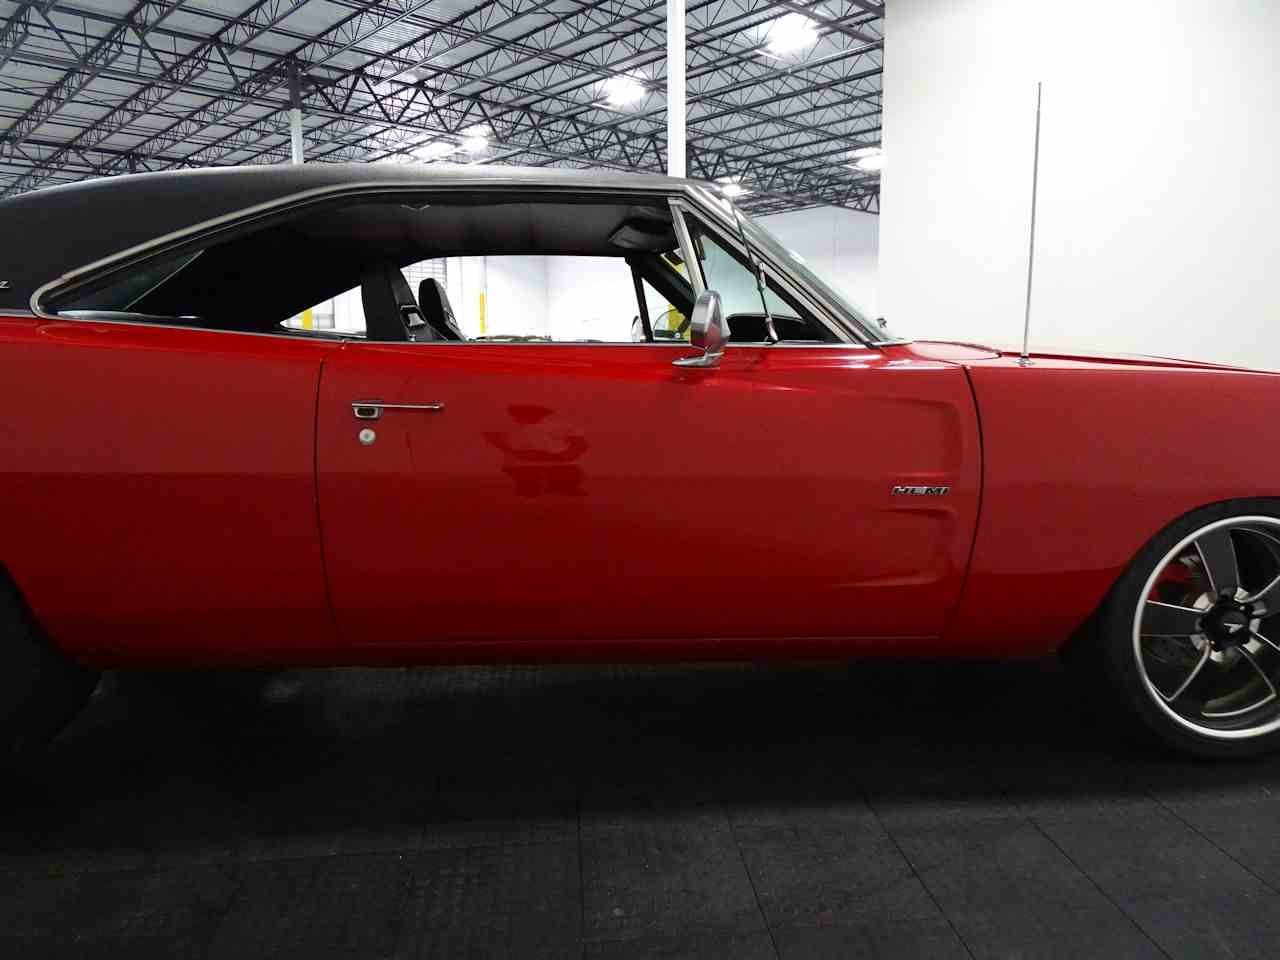 Large Picture of '68 Charger located in Texas - $76,000.00 Offered by Gateway Classic Cars - Houston - LUKM